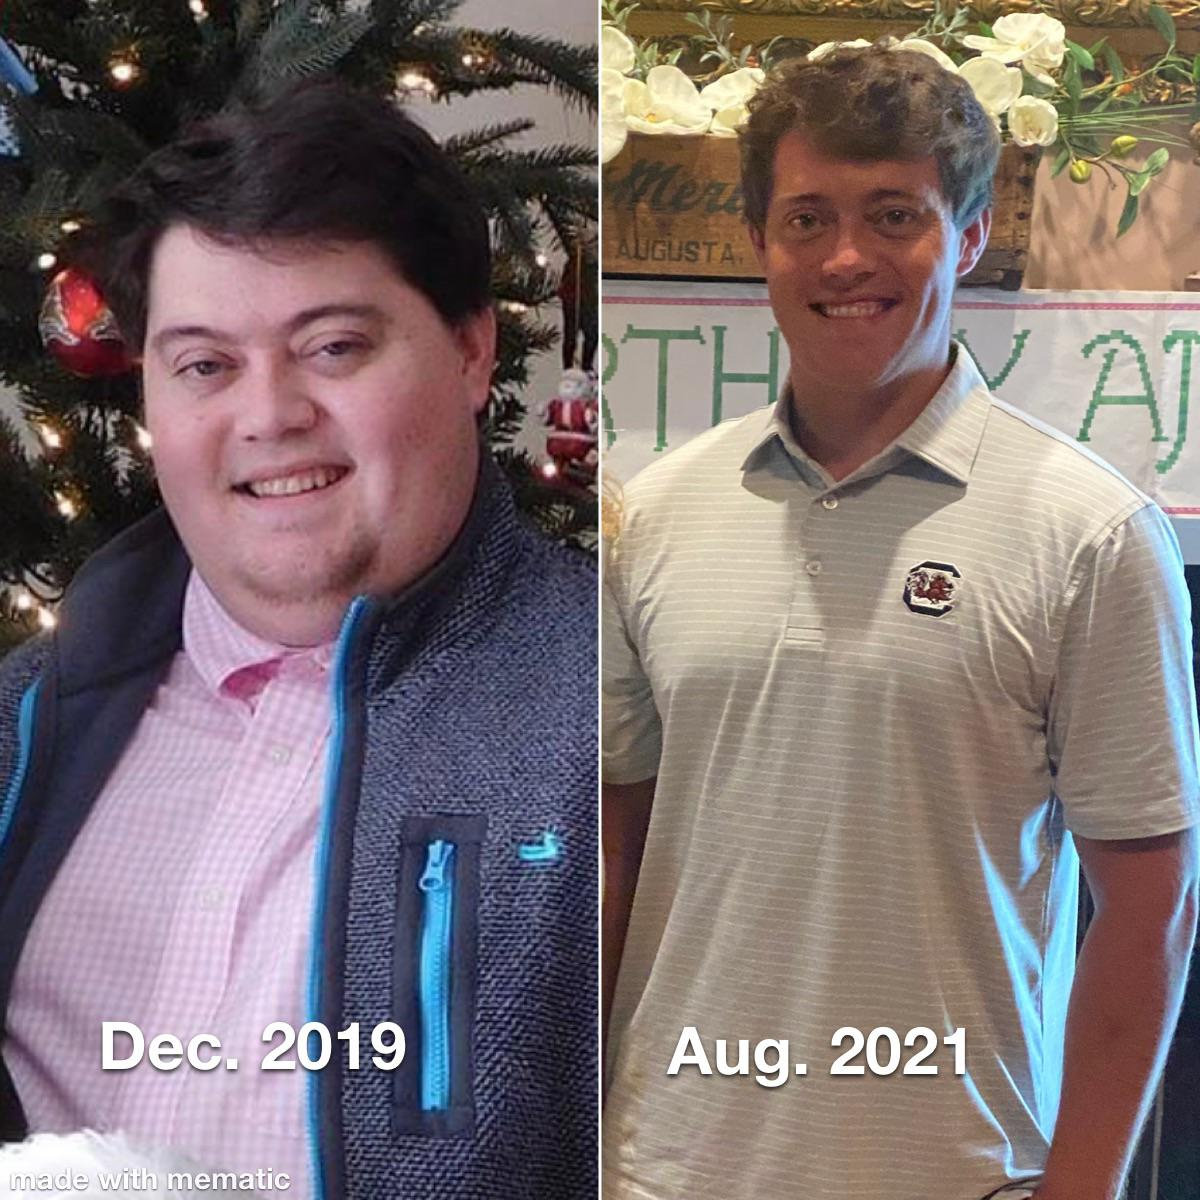 95 lbs Weight Loss Before and After 5 foot 8 Male 250 lbs to 155 lbs